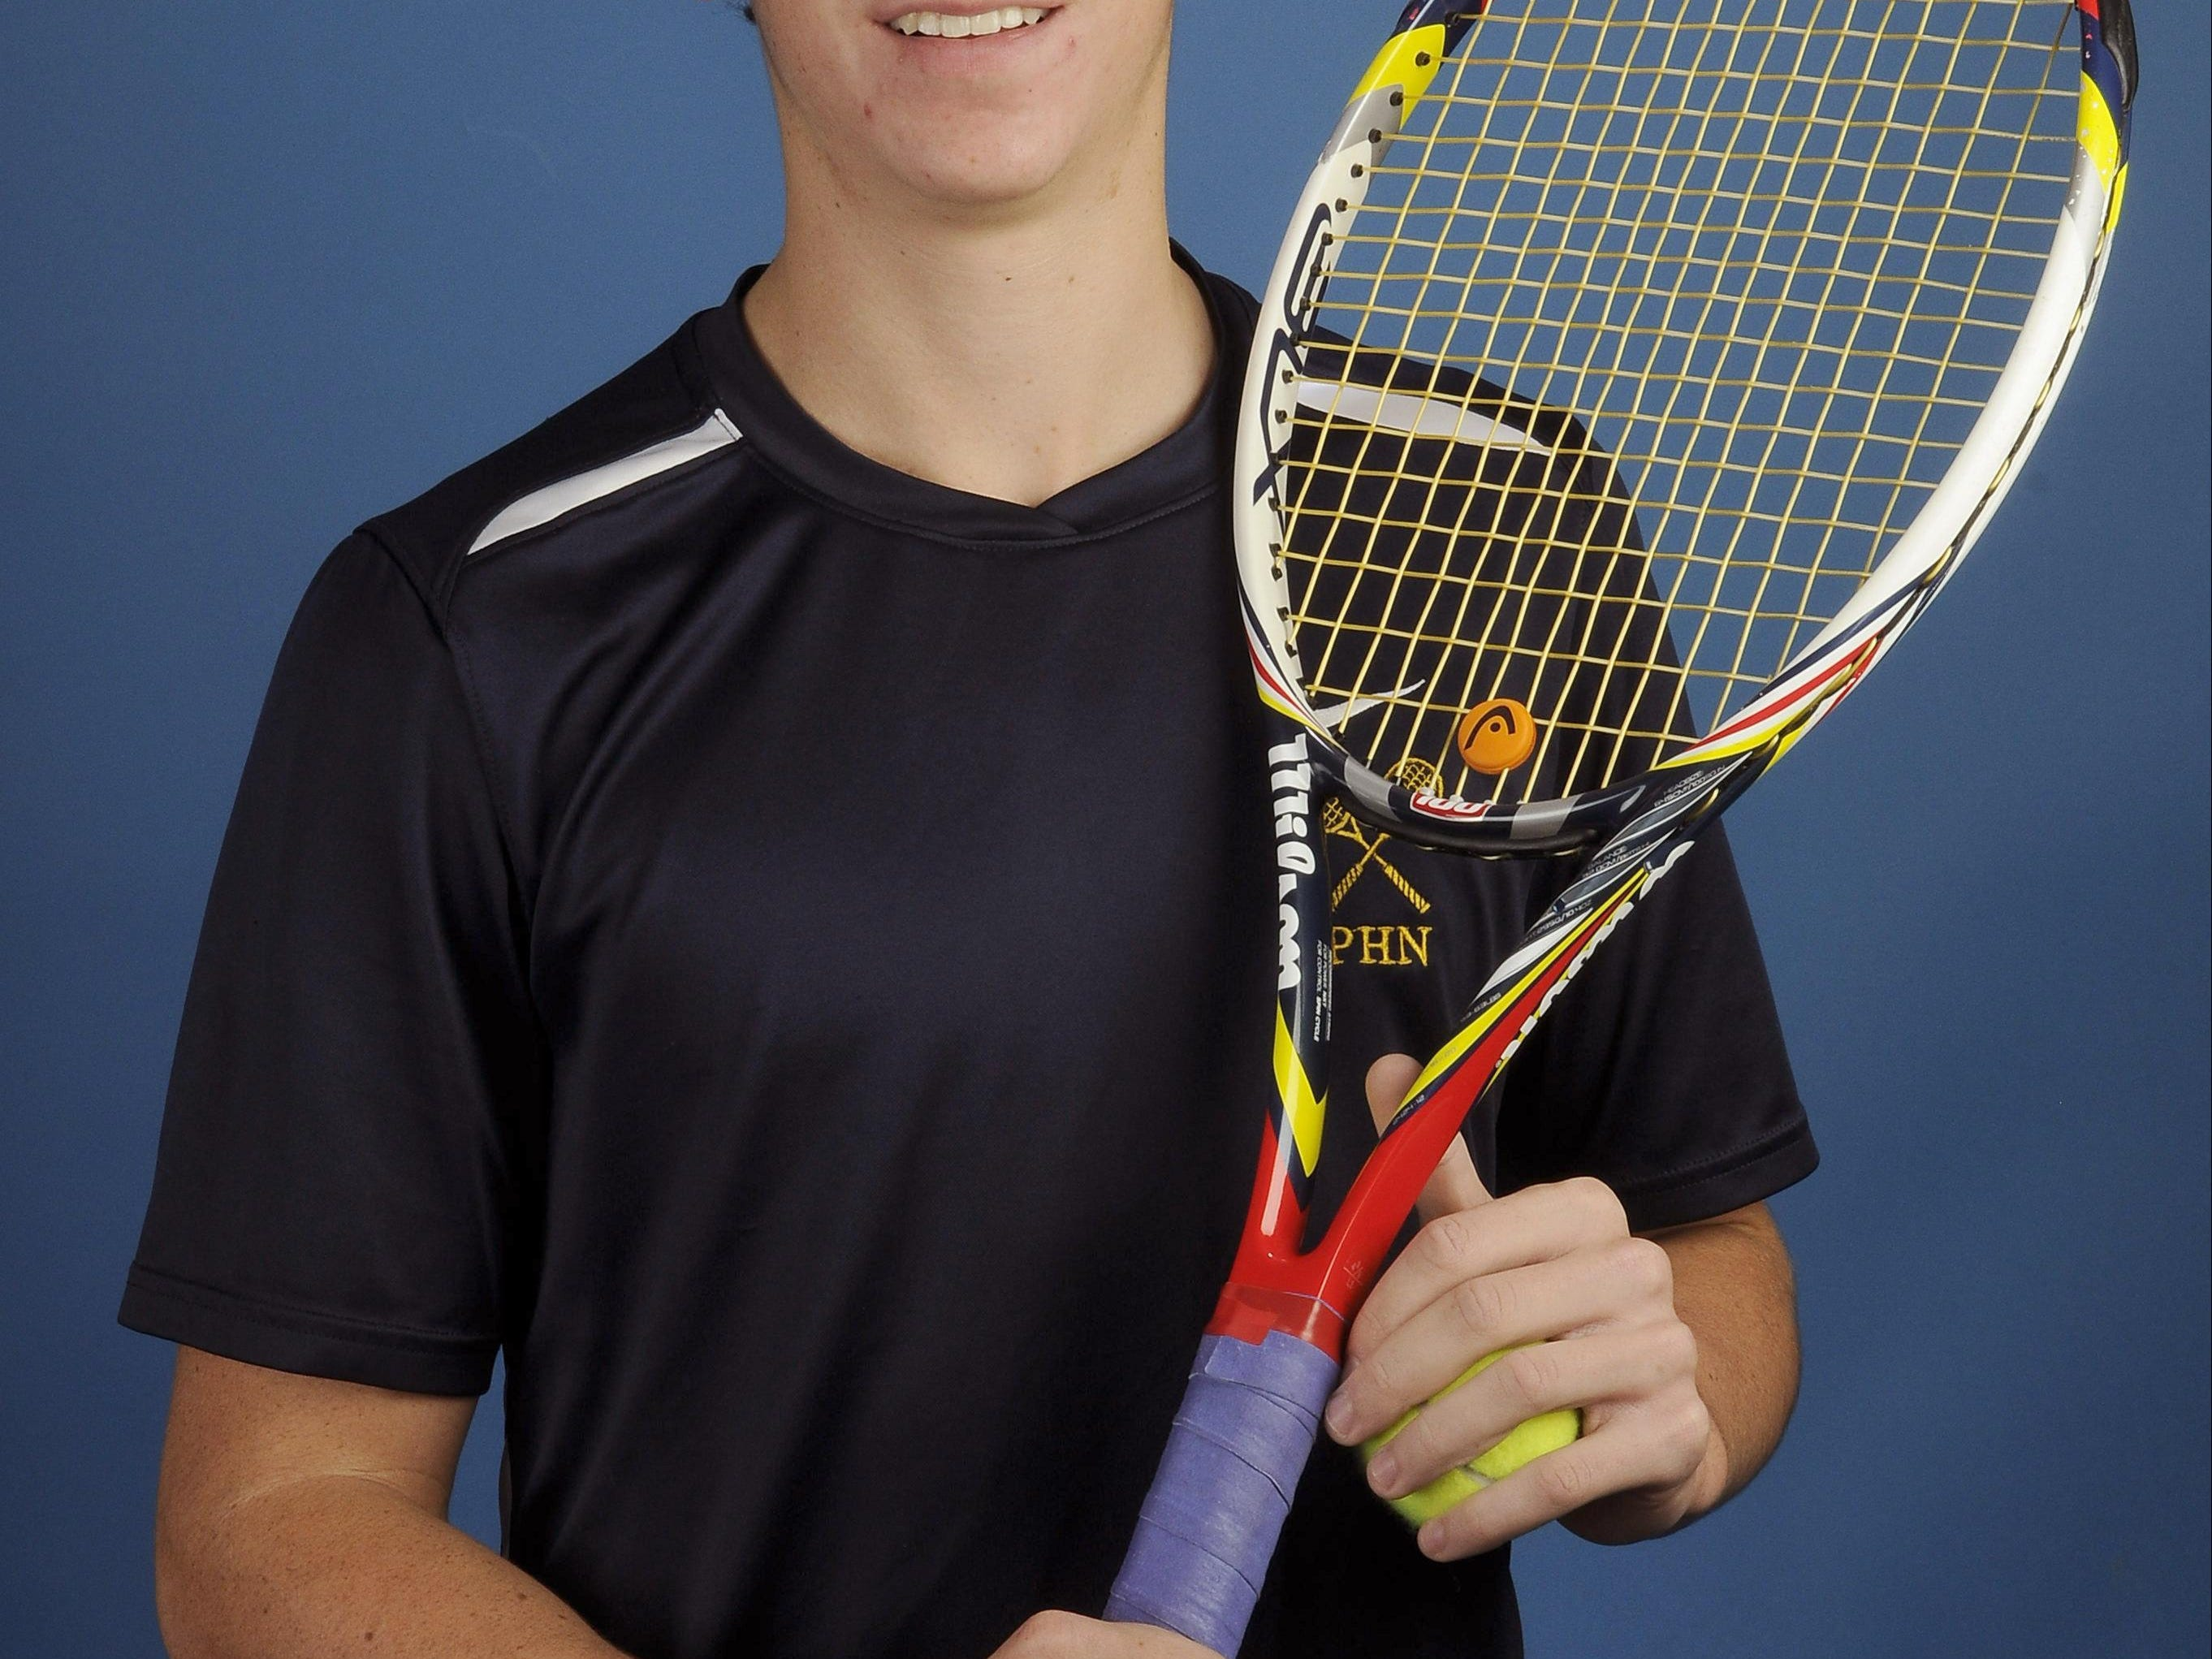 Port Huron Norhthern's Franklin Brozovich is the Times Herald Boys Tennis Player of the Year for the second straight year.